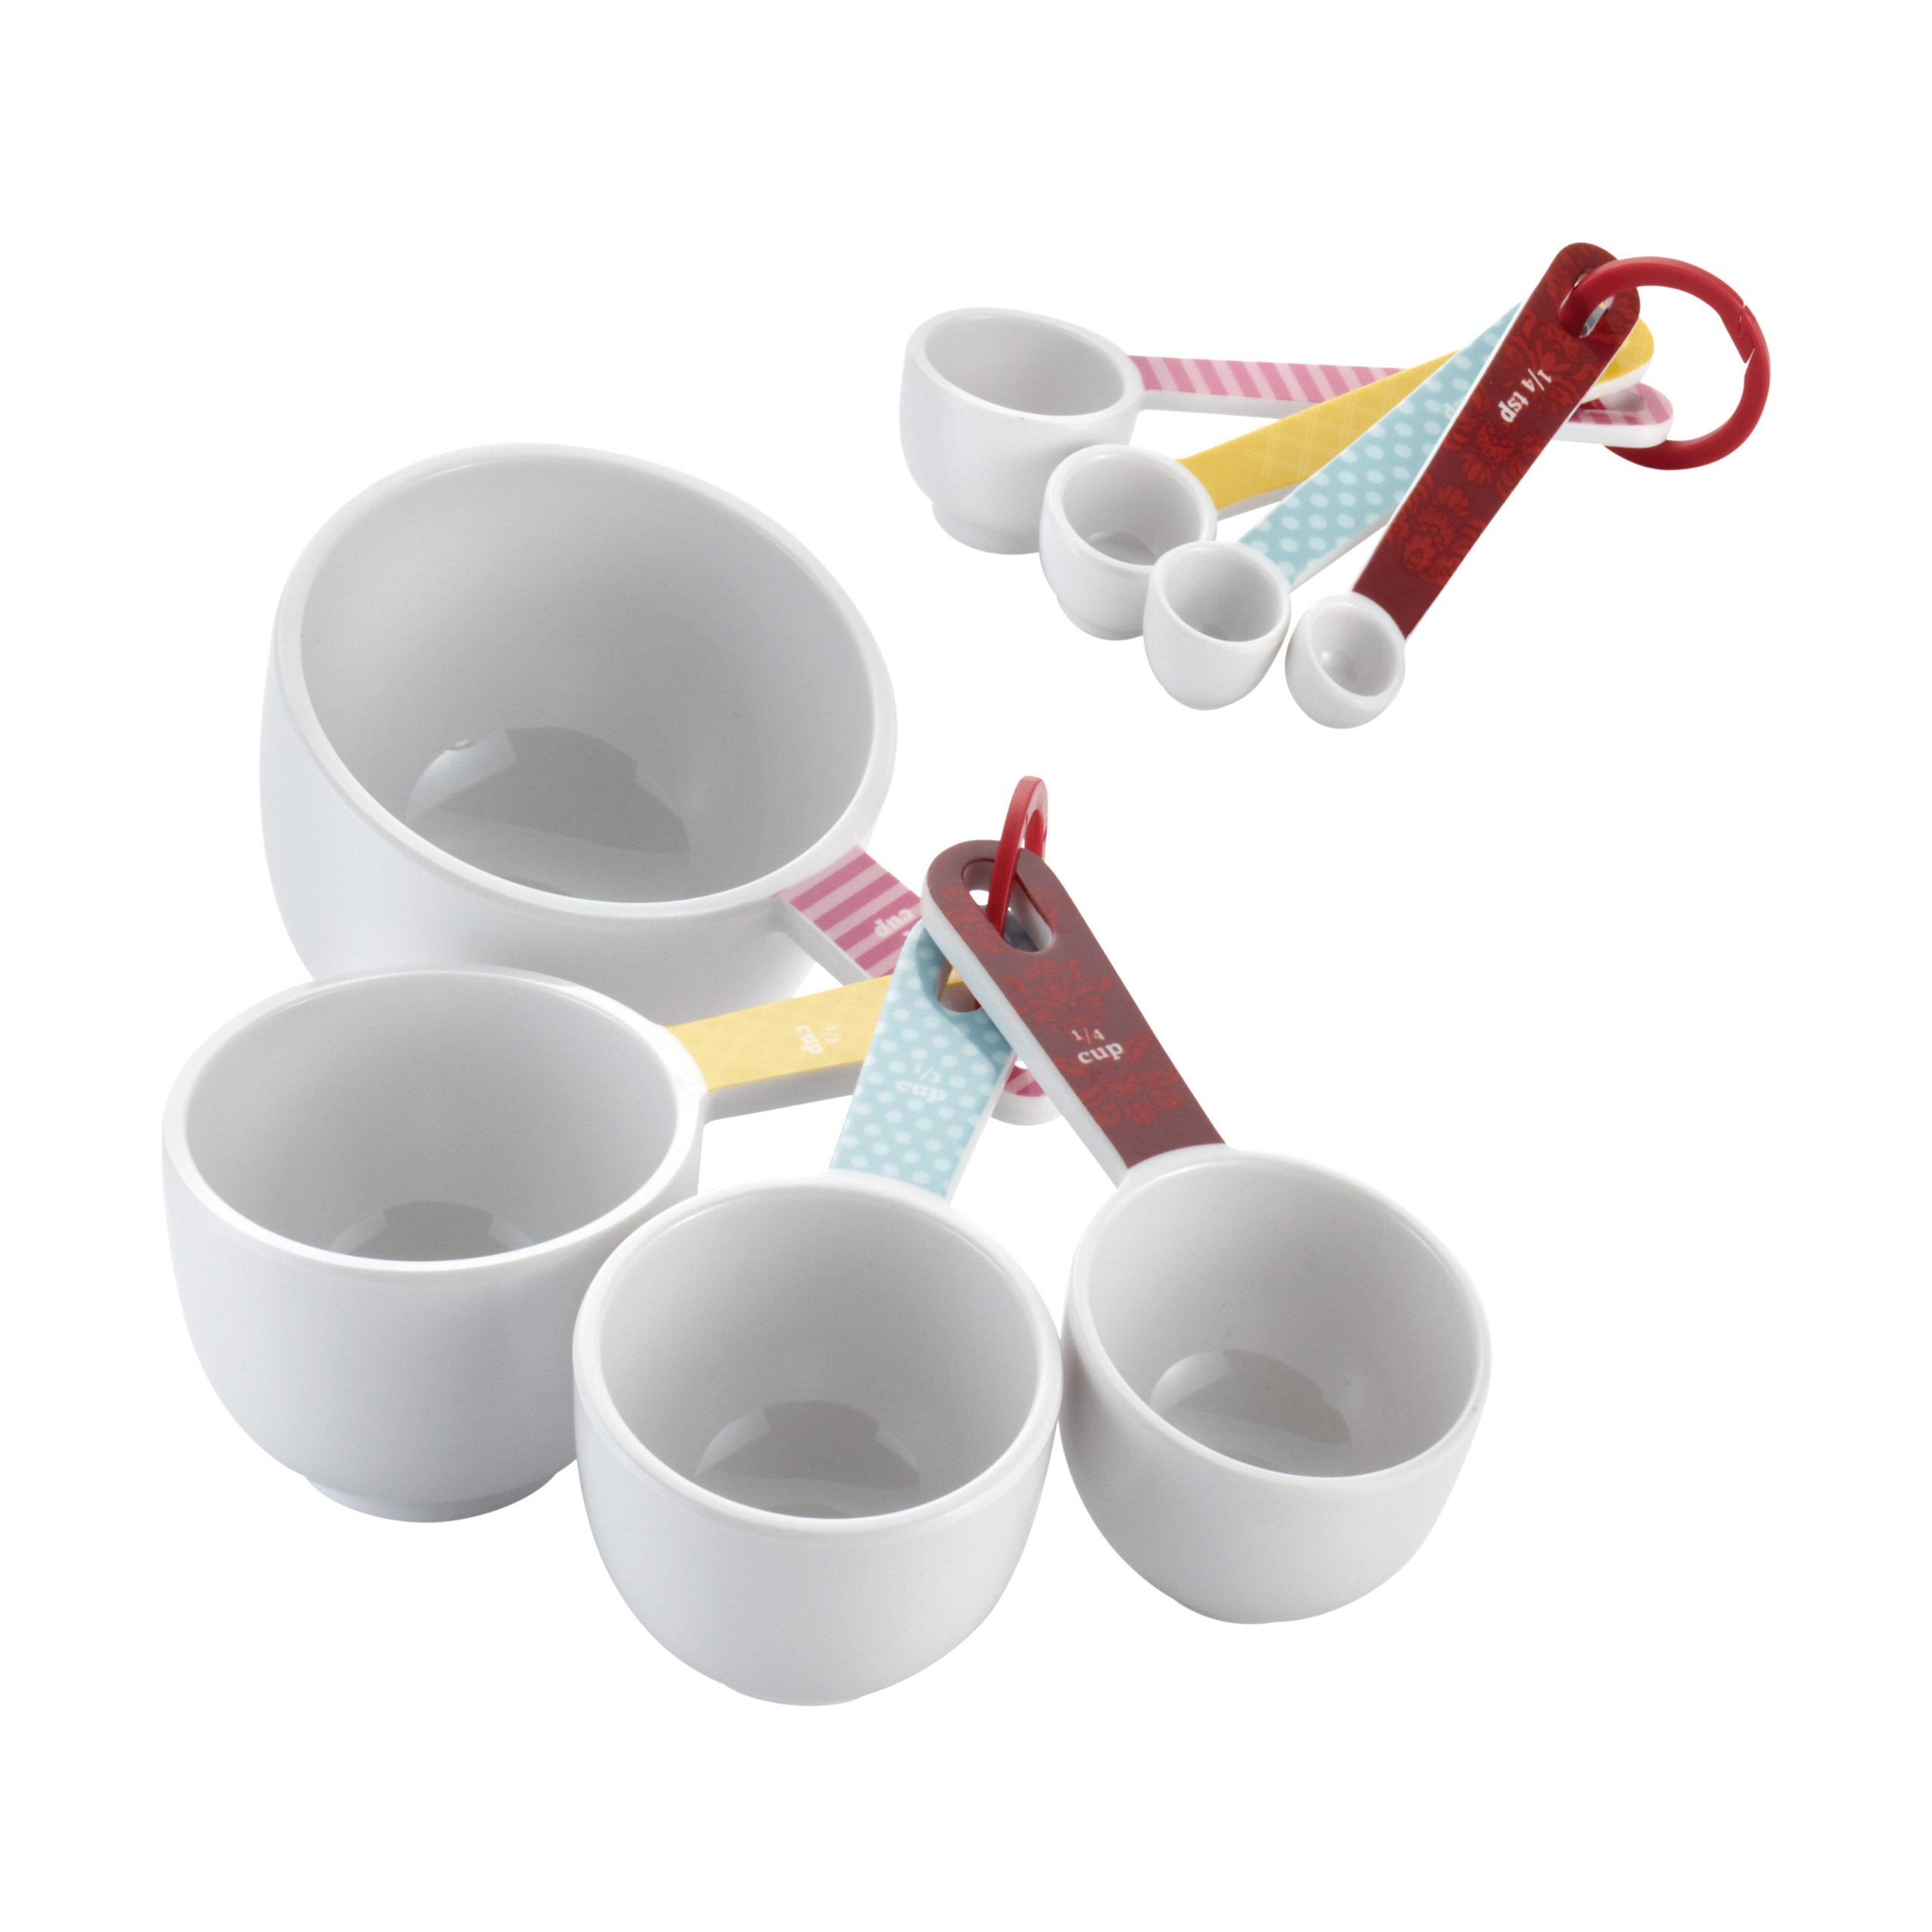 Cake Boss Countertop Accessories 8-Piece Melamine Measuring Cups and Spoons Set, Basic Pattern